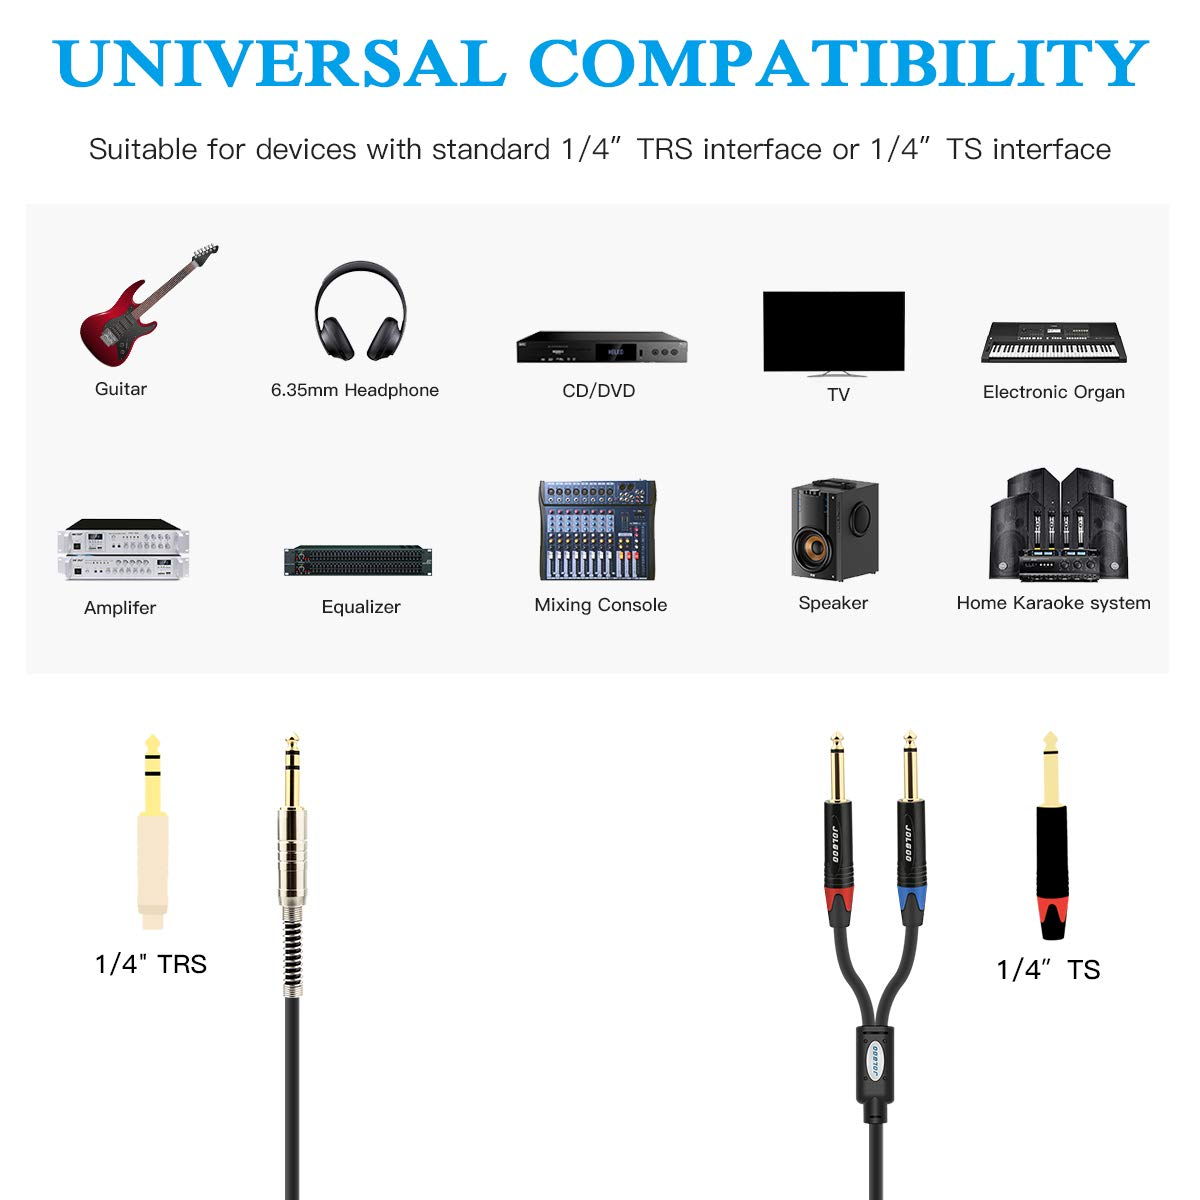 JOLGOO 1//4 TRS to Dual 1//4 TS Mono Stereo Breakout Cable 10 Feet Male 6.35mm 1//4 TRS to Dual 1//4 Inch TS Y Splitter Cord